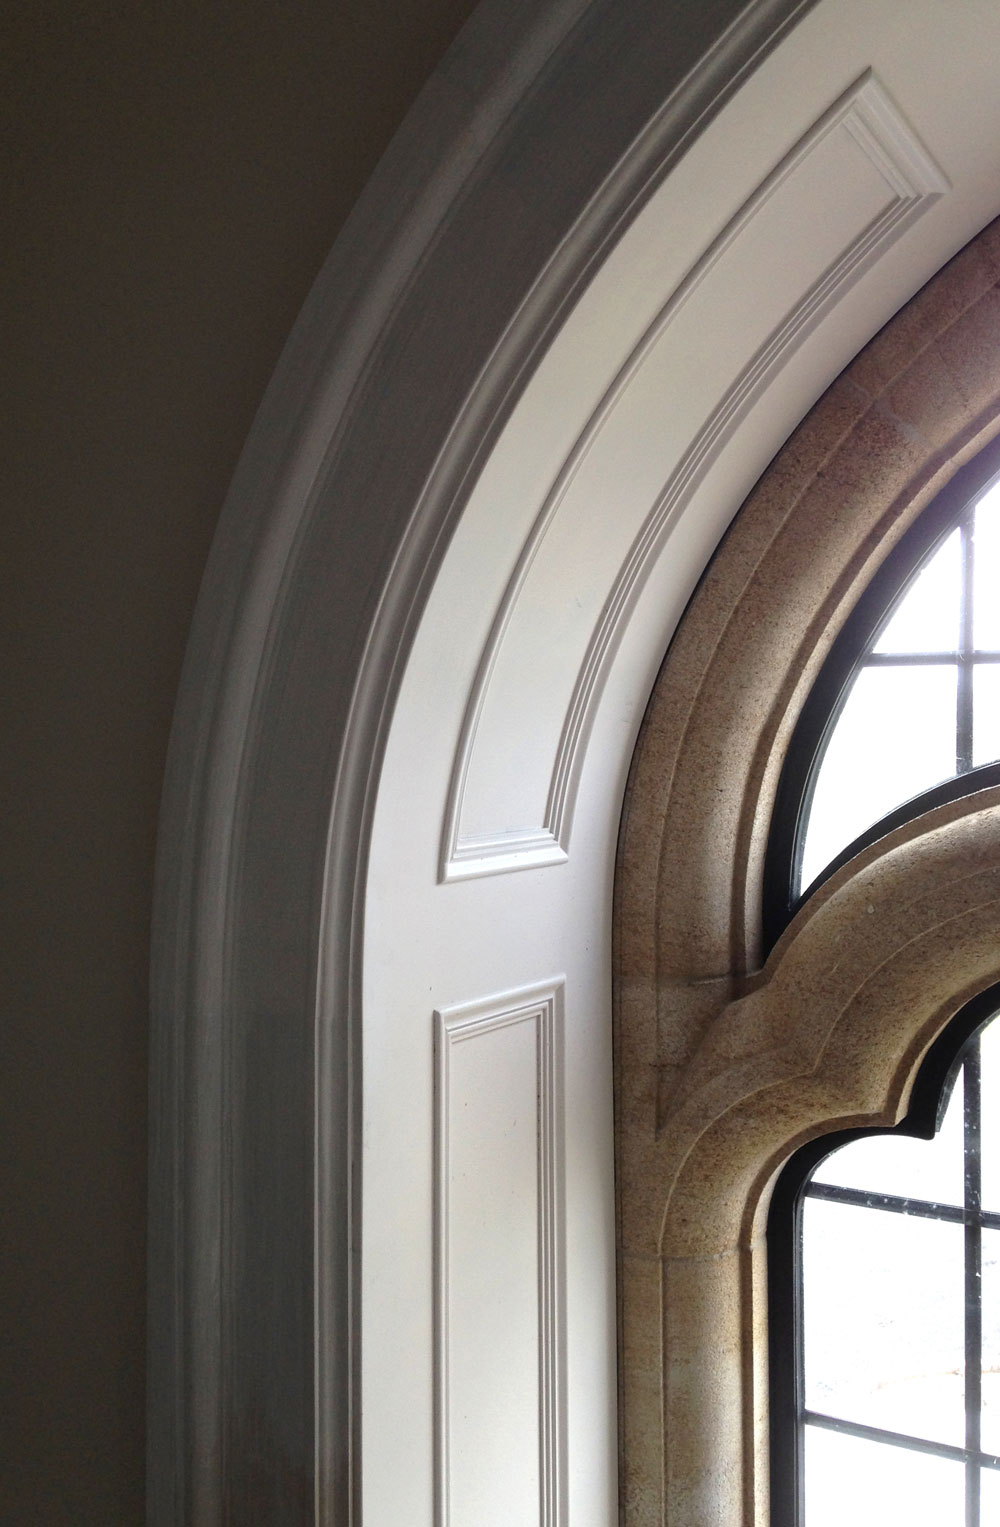 Mouldings and panelling